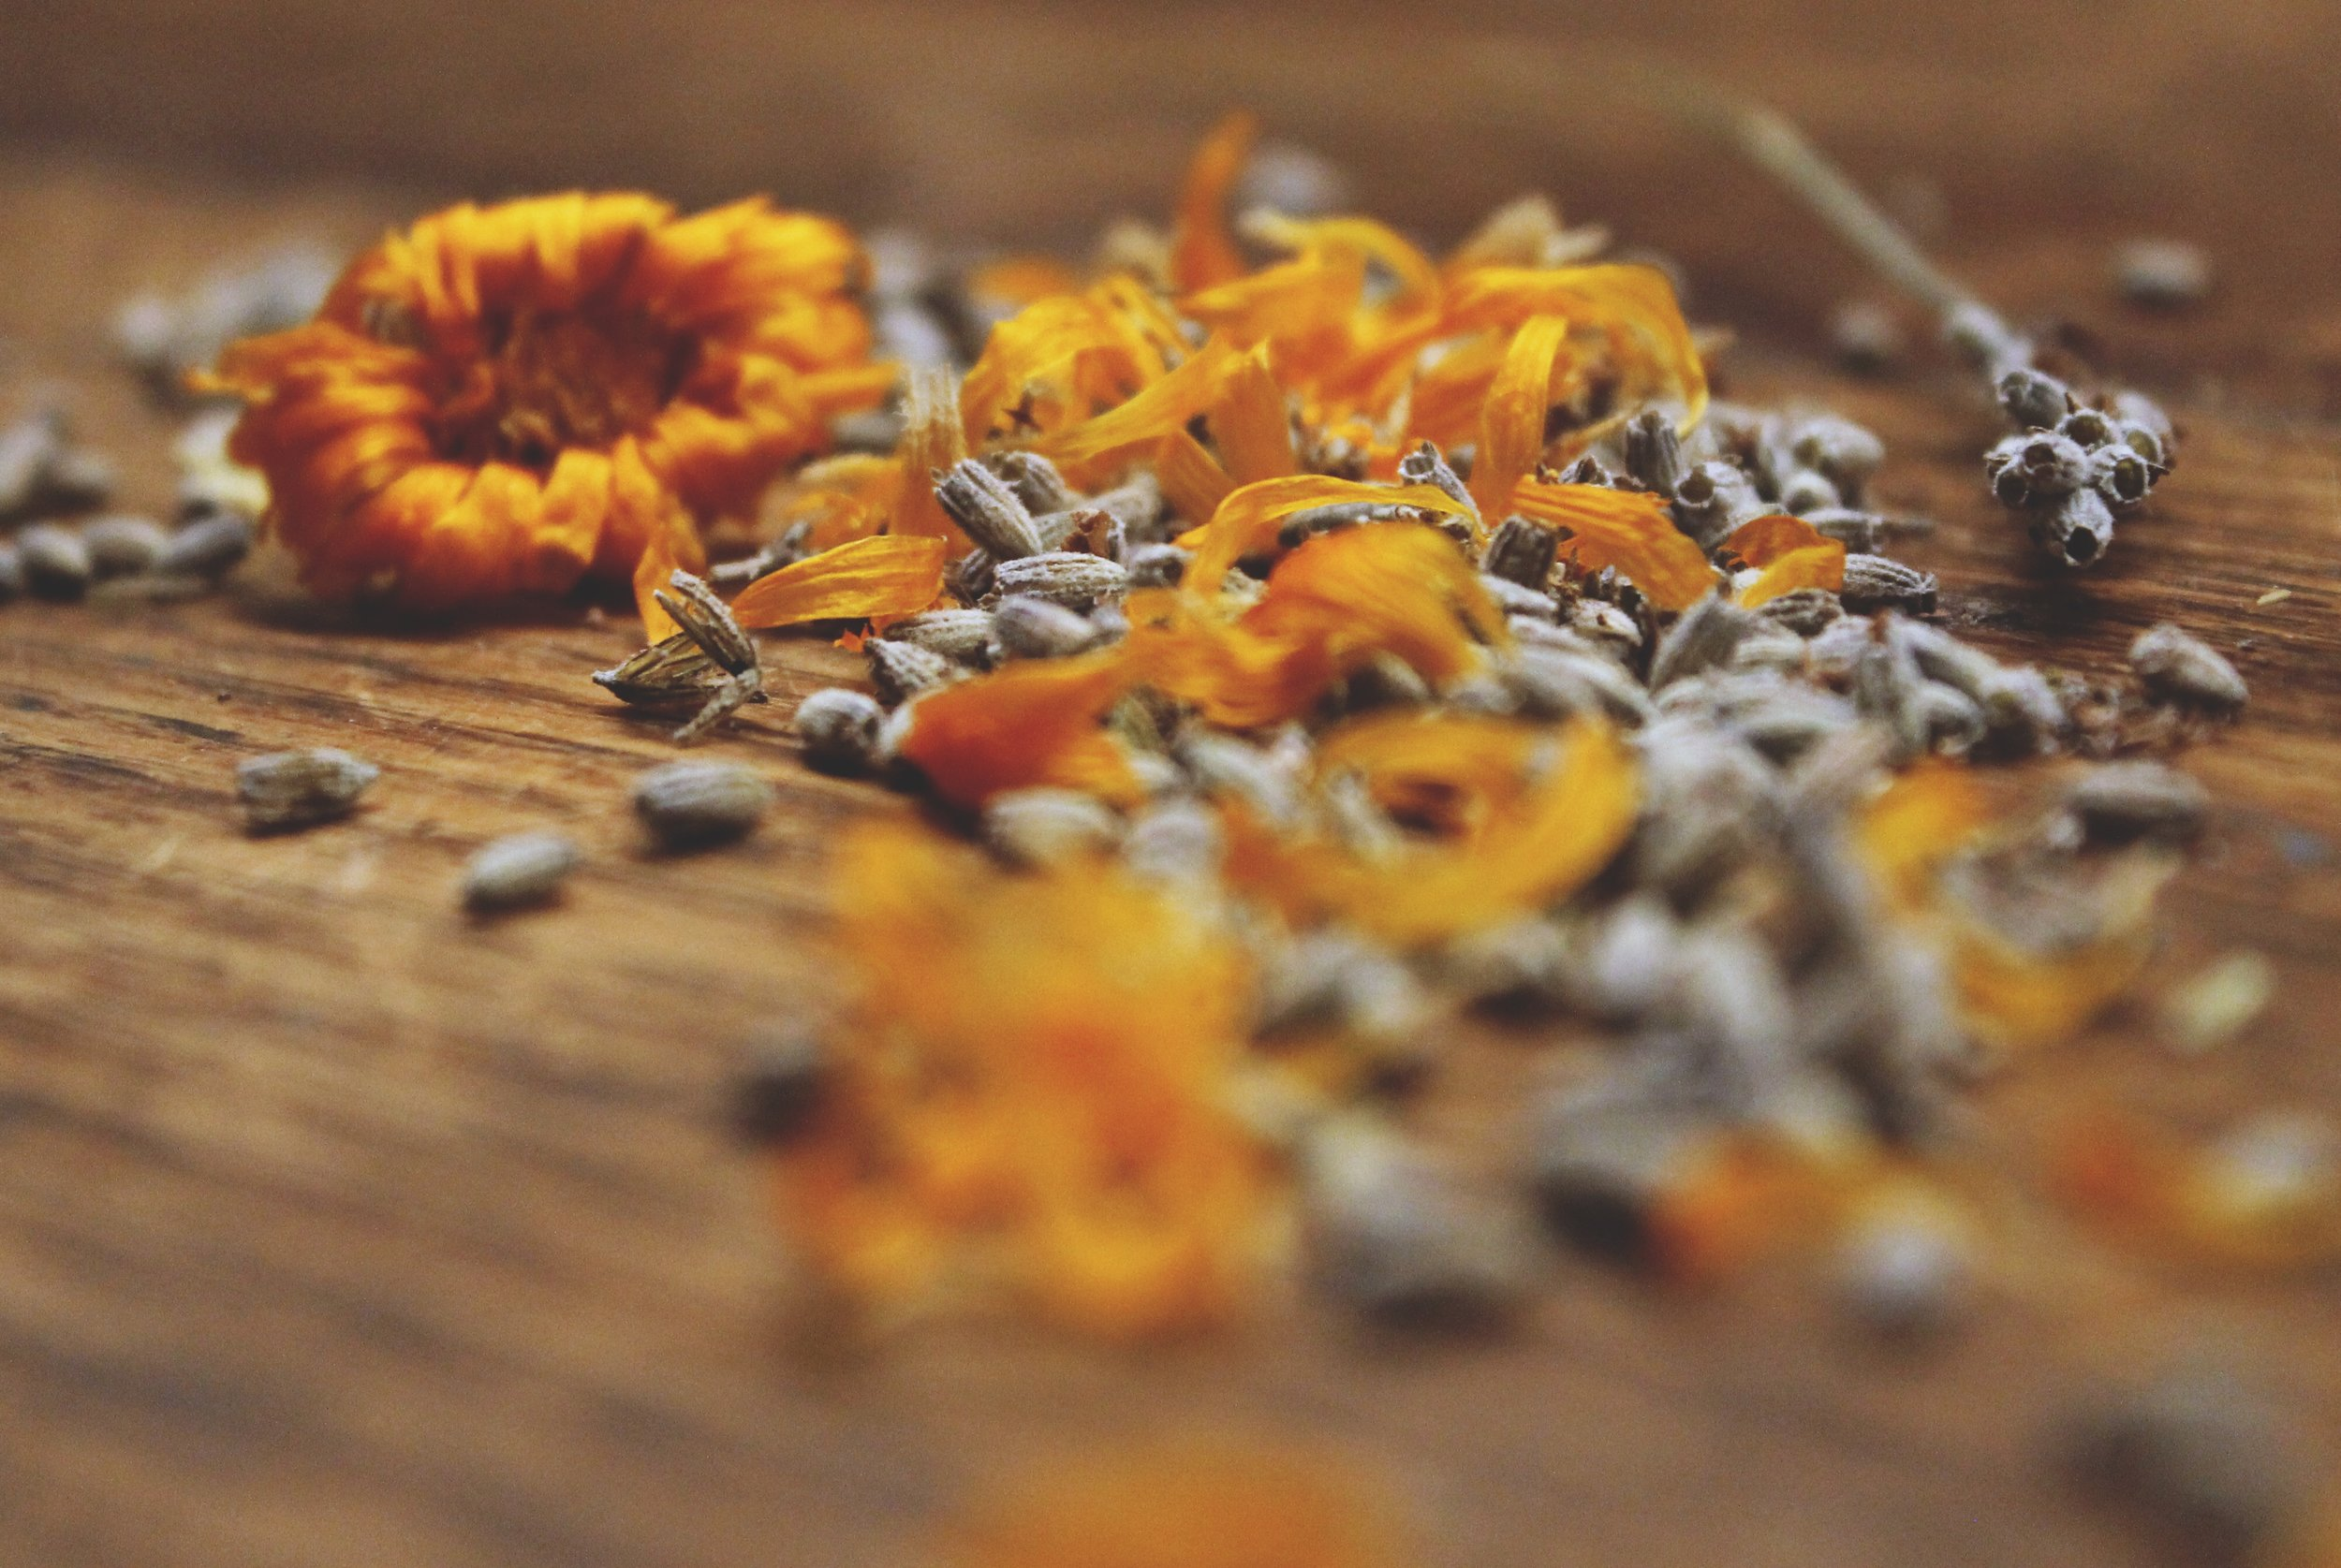 Shred remaining calendula and lavender